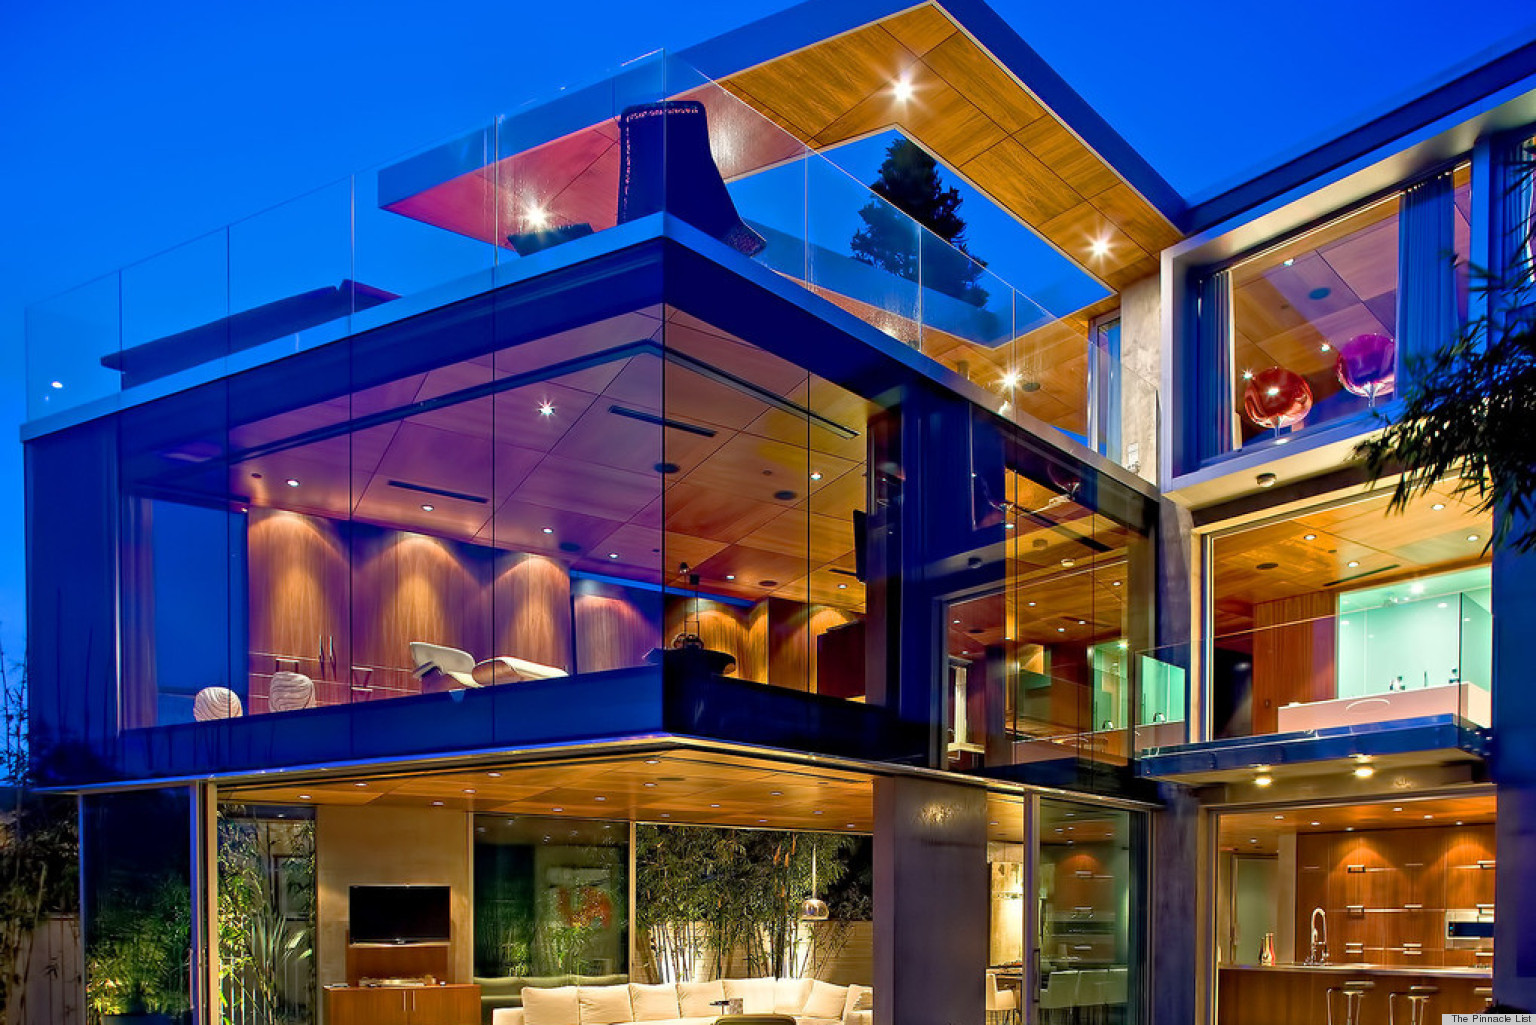 lemperle glass house residence is seriously a home lovers dream photos huffpost - Biggest House In The World 2014